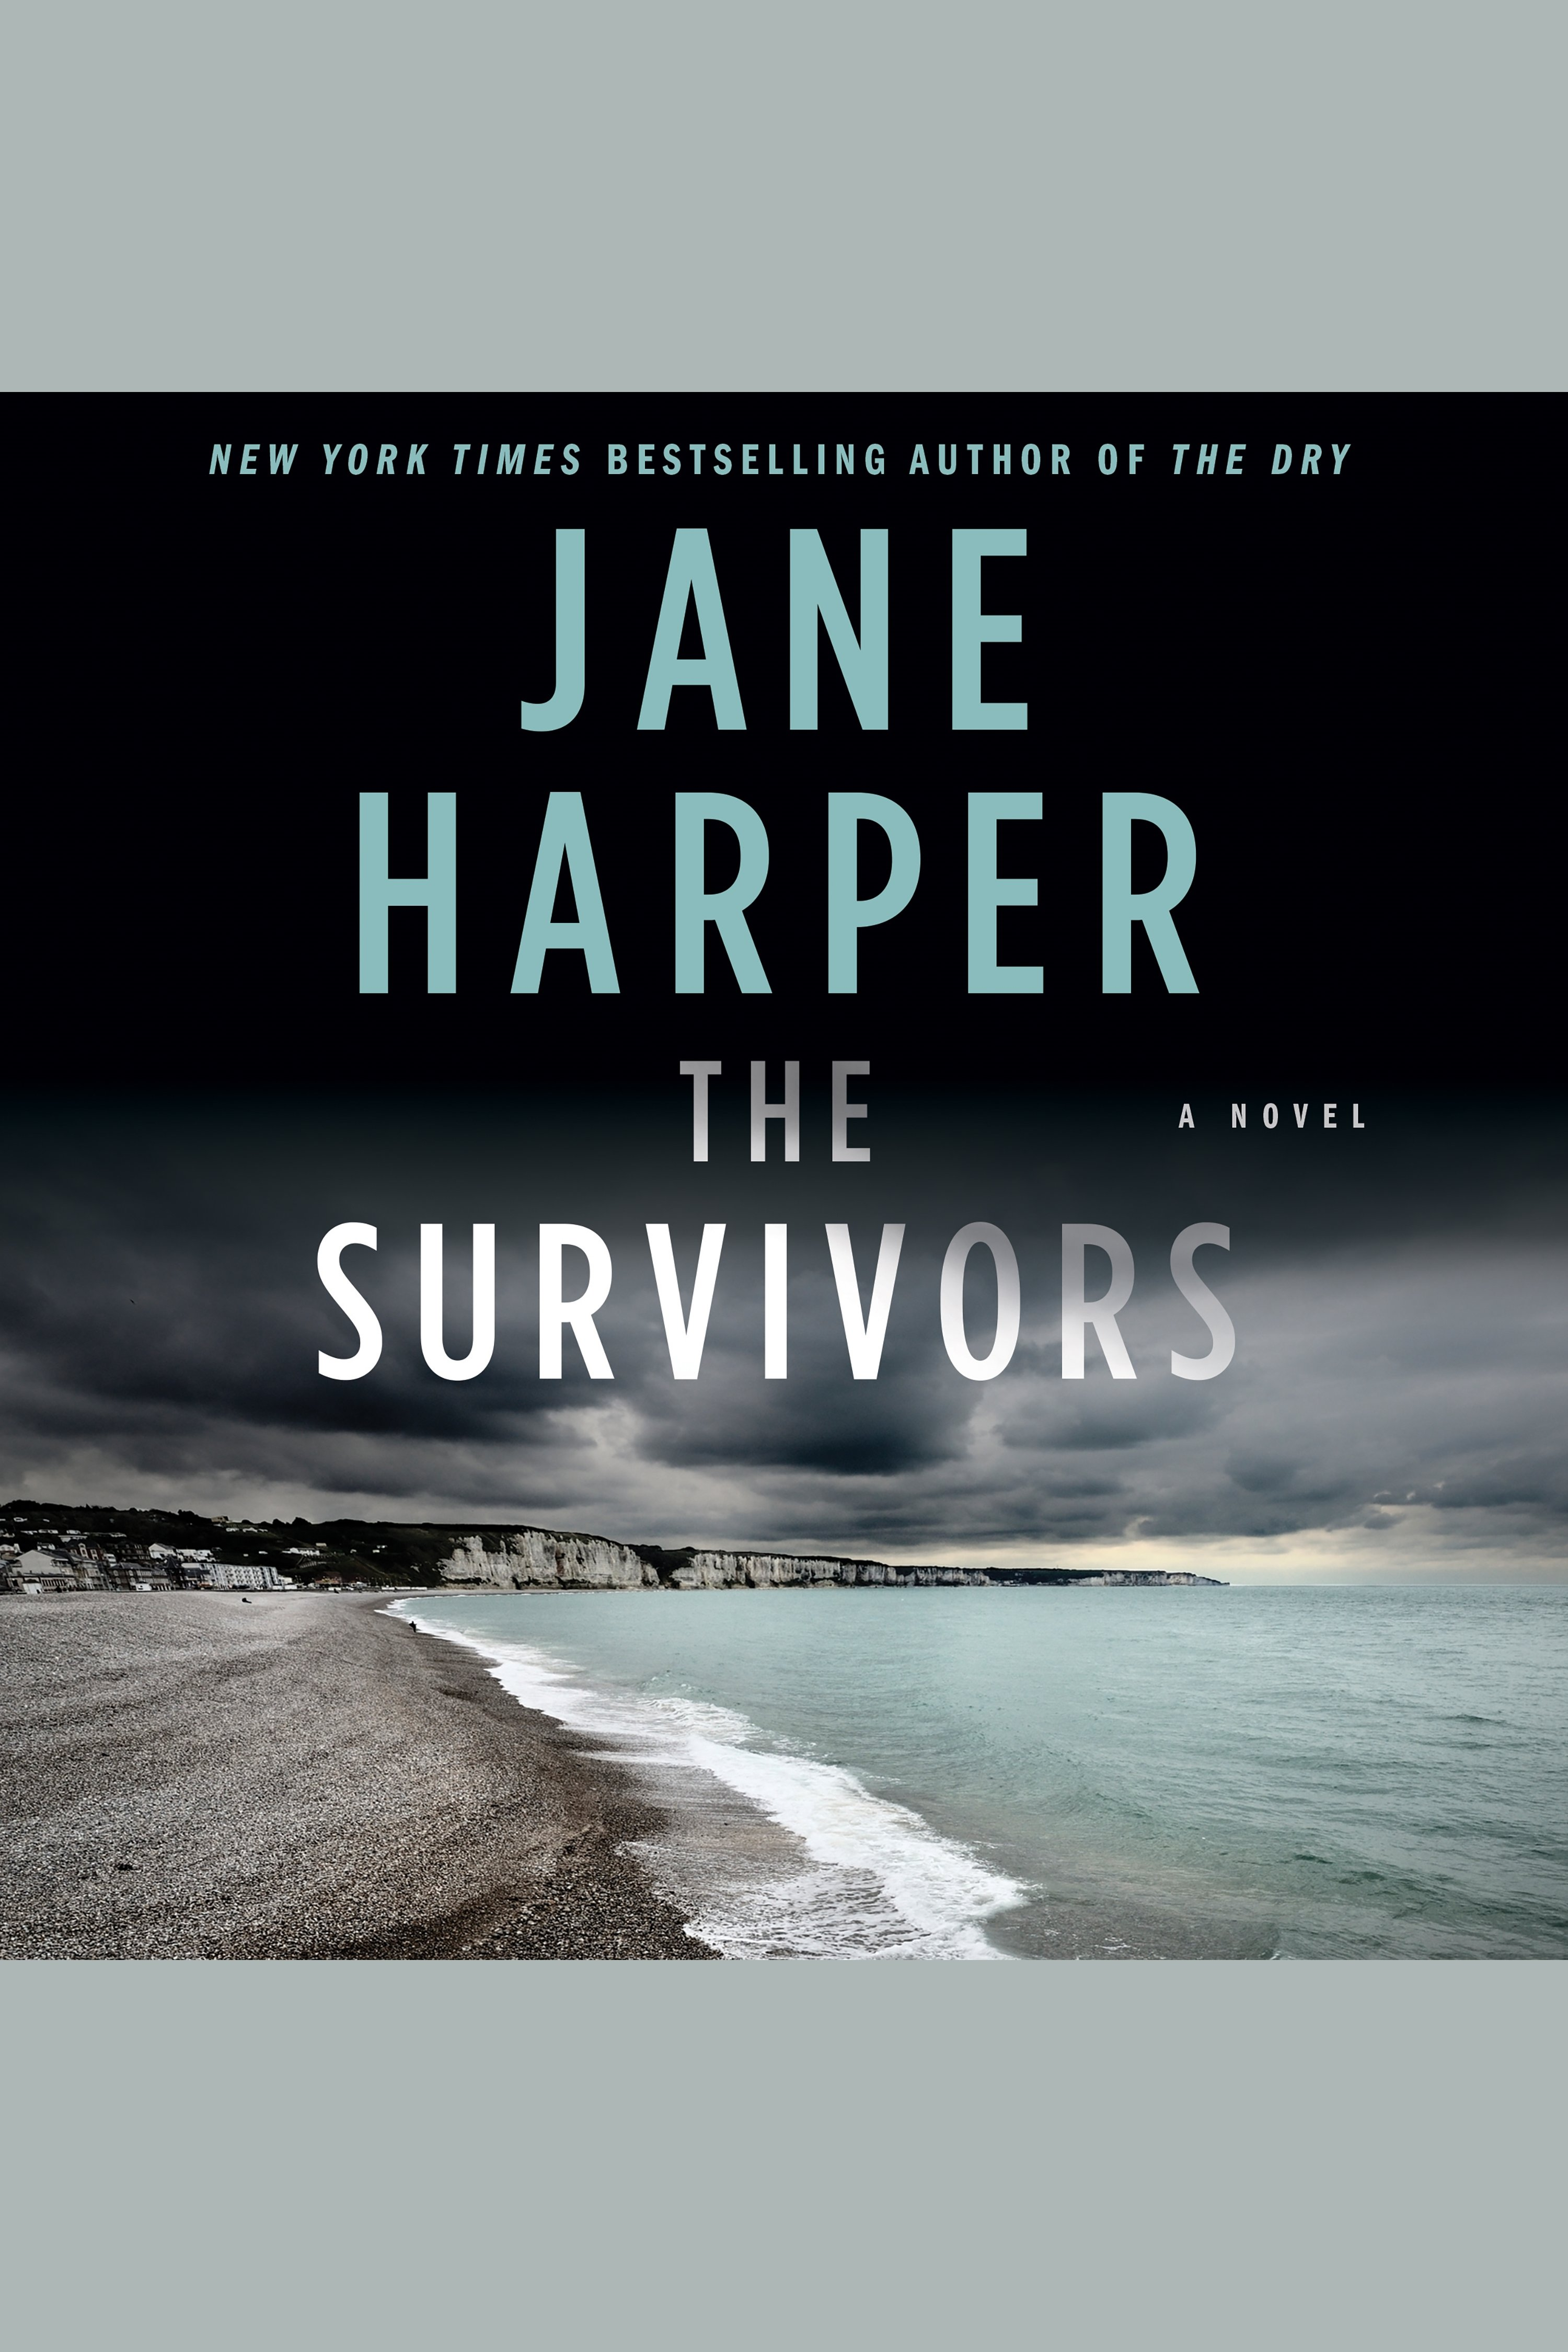 Cover Image of Survivors, The